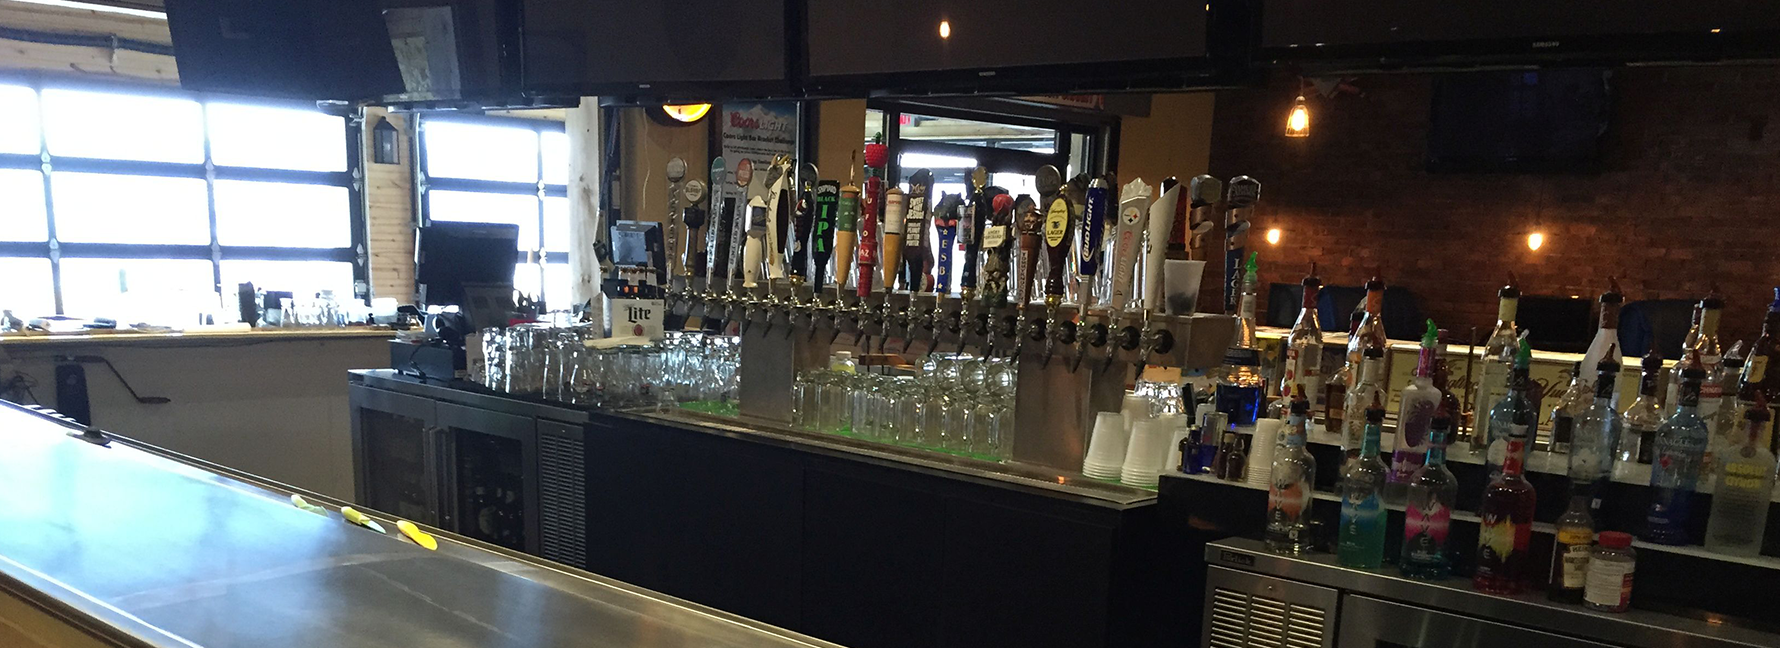 11th Frame Bar and Grille - Eateries | Visit Butler County Pennsylvania!